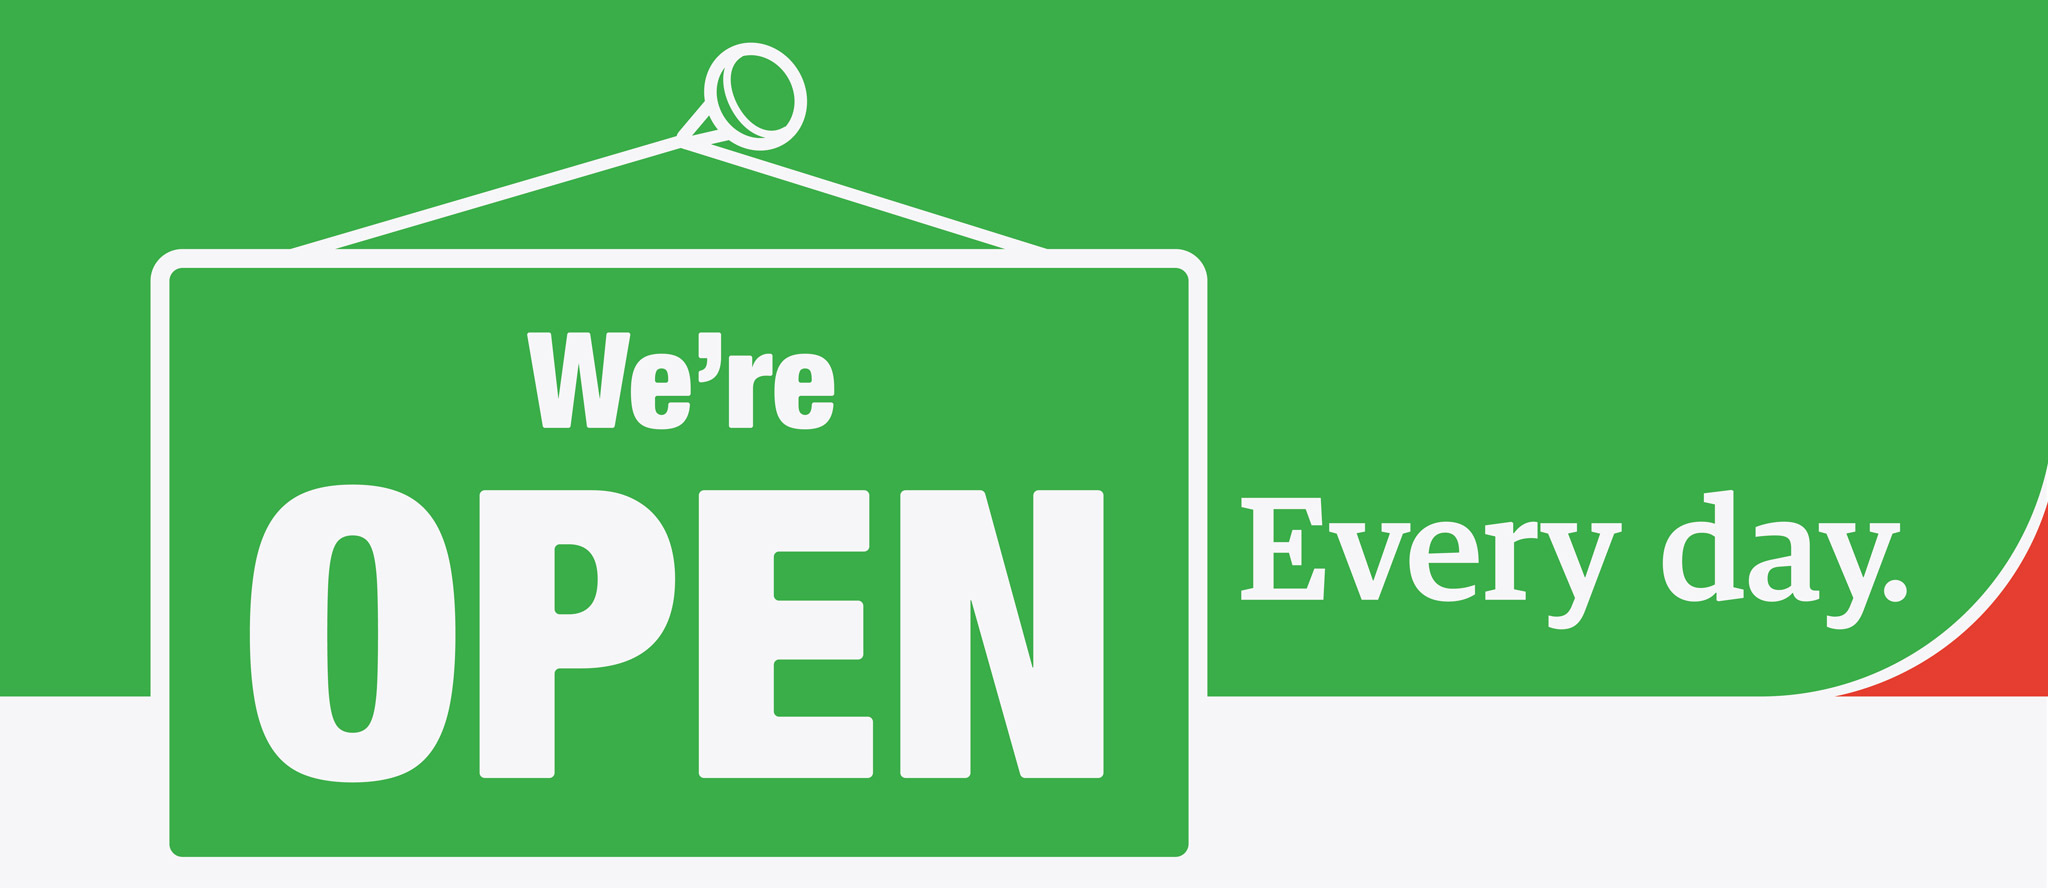 First Care - We're Open - Every Day